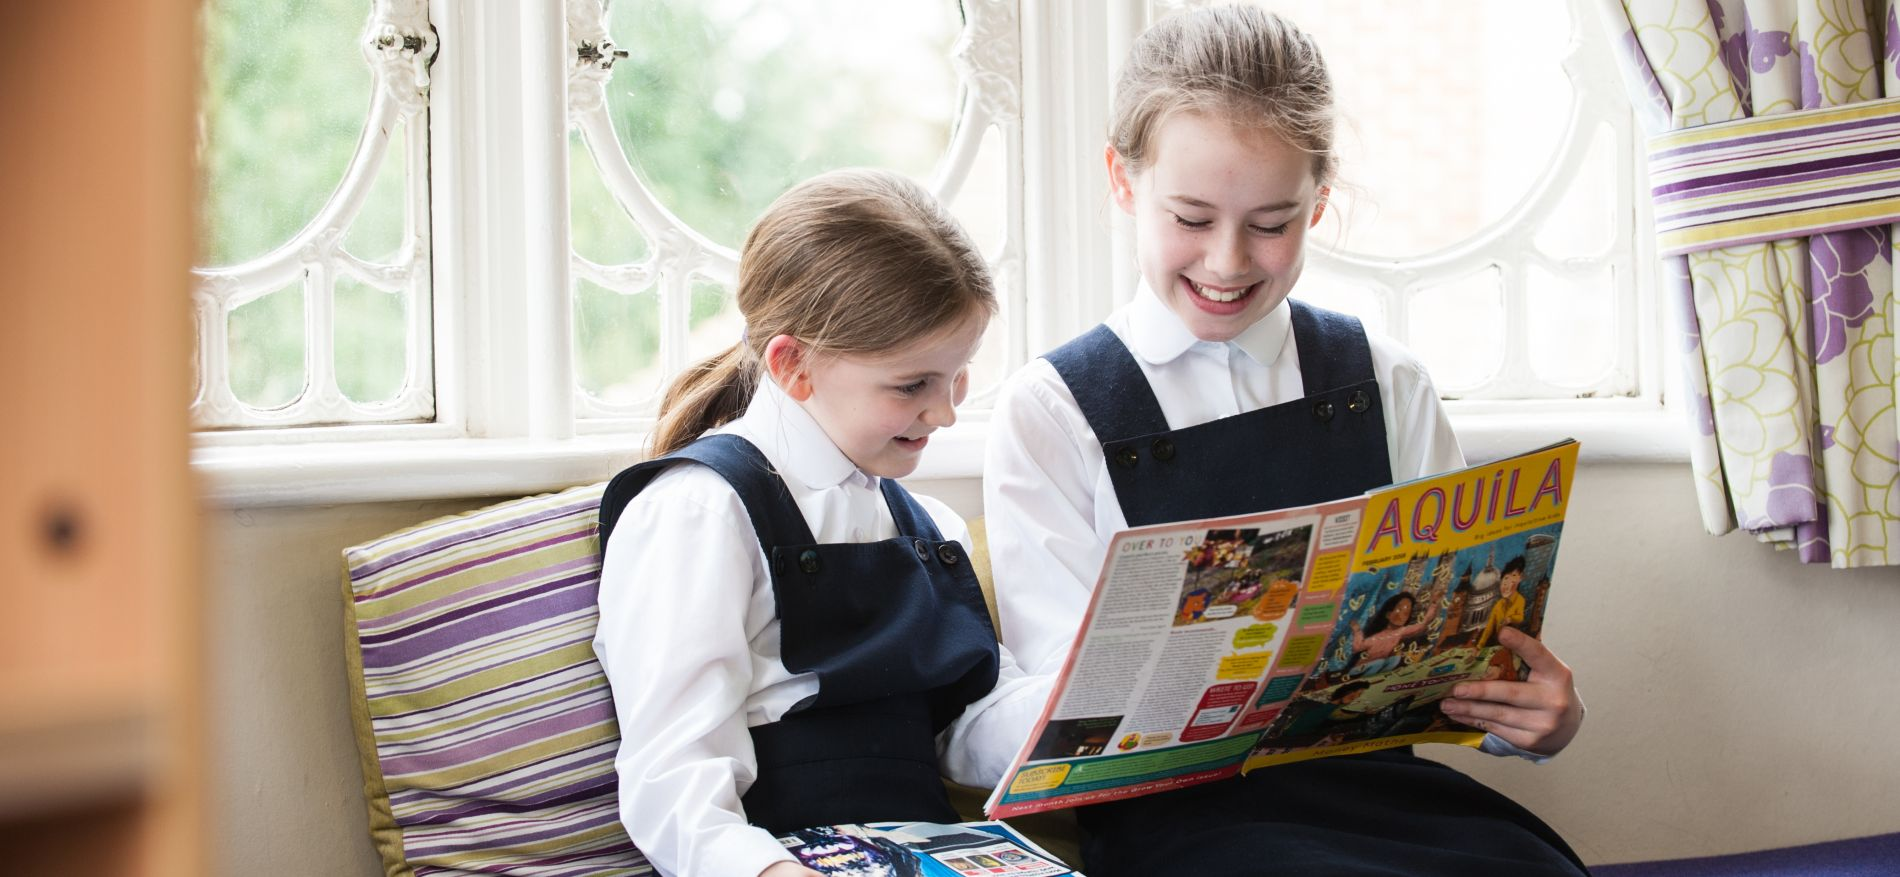 2 young students reading through a magazine titled Aquila